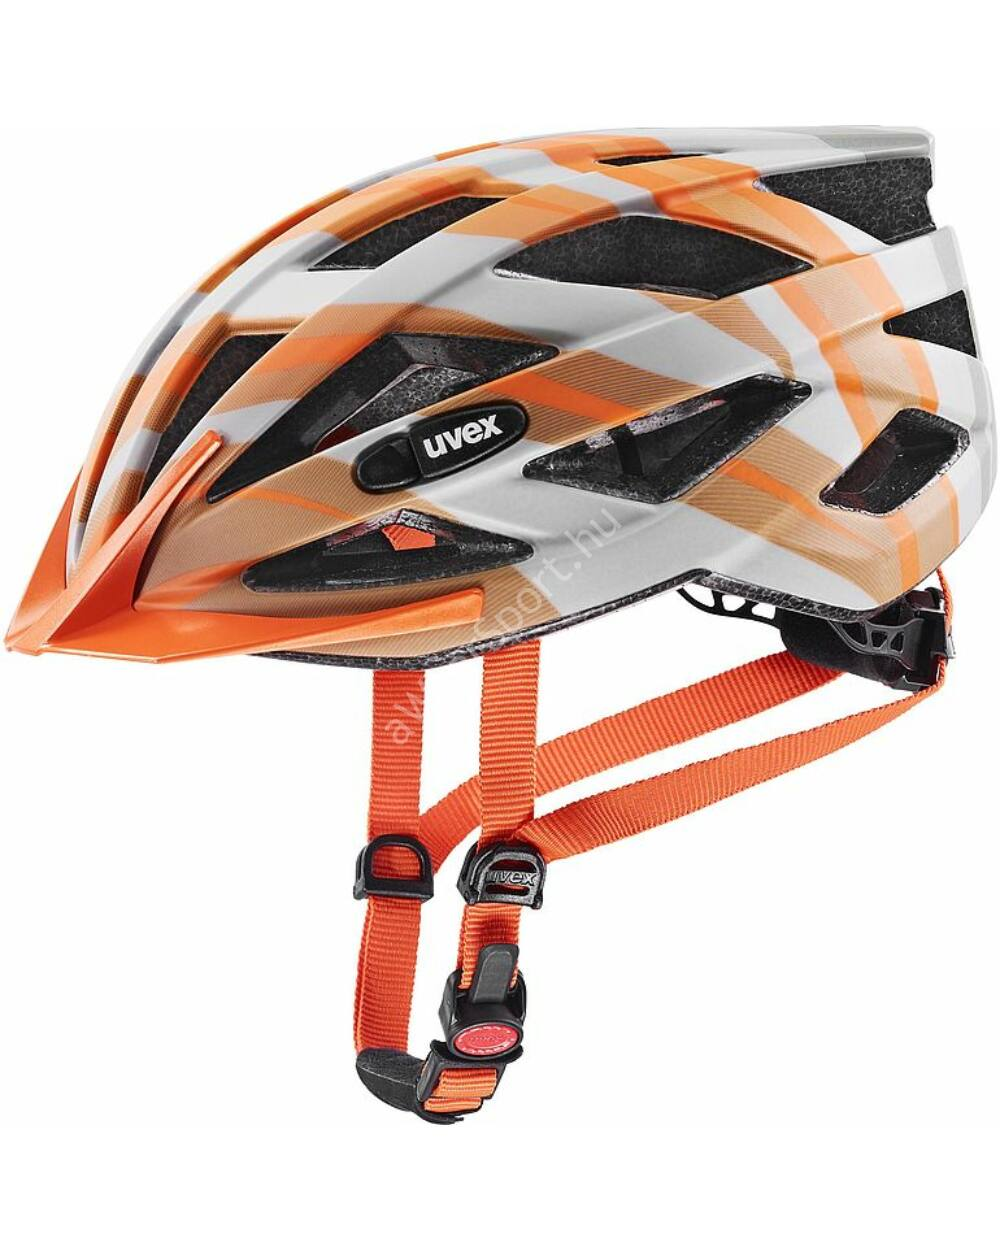 Uvex Air Wing cc grey-orange mat bukósisak, 52-57 cm